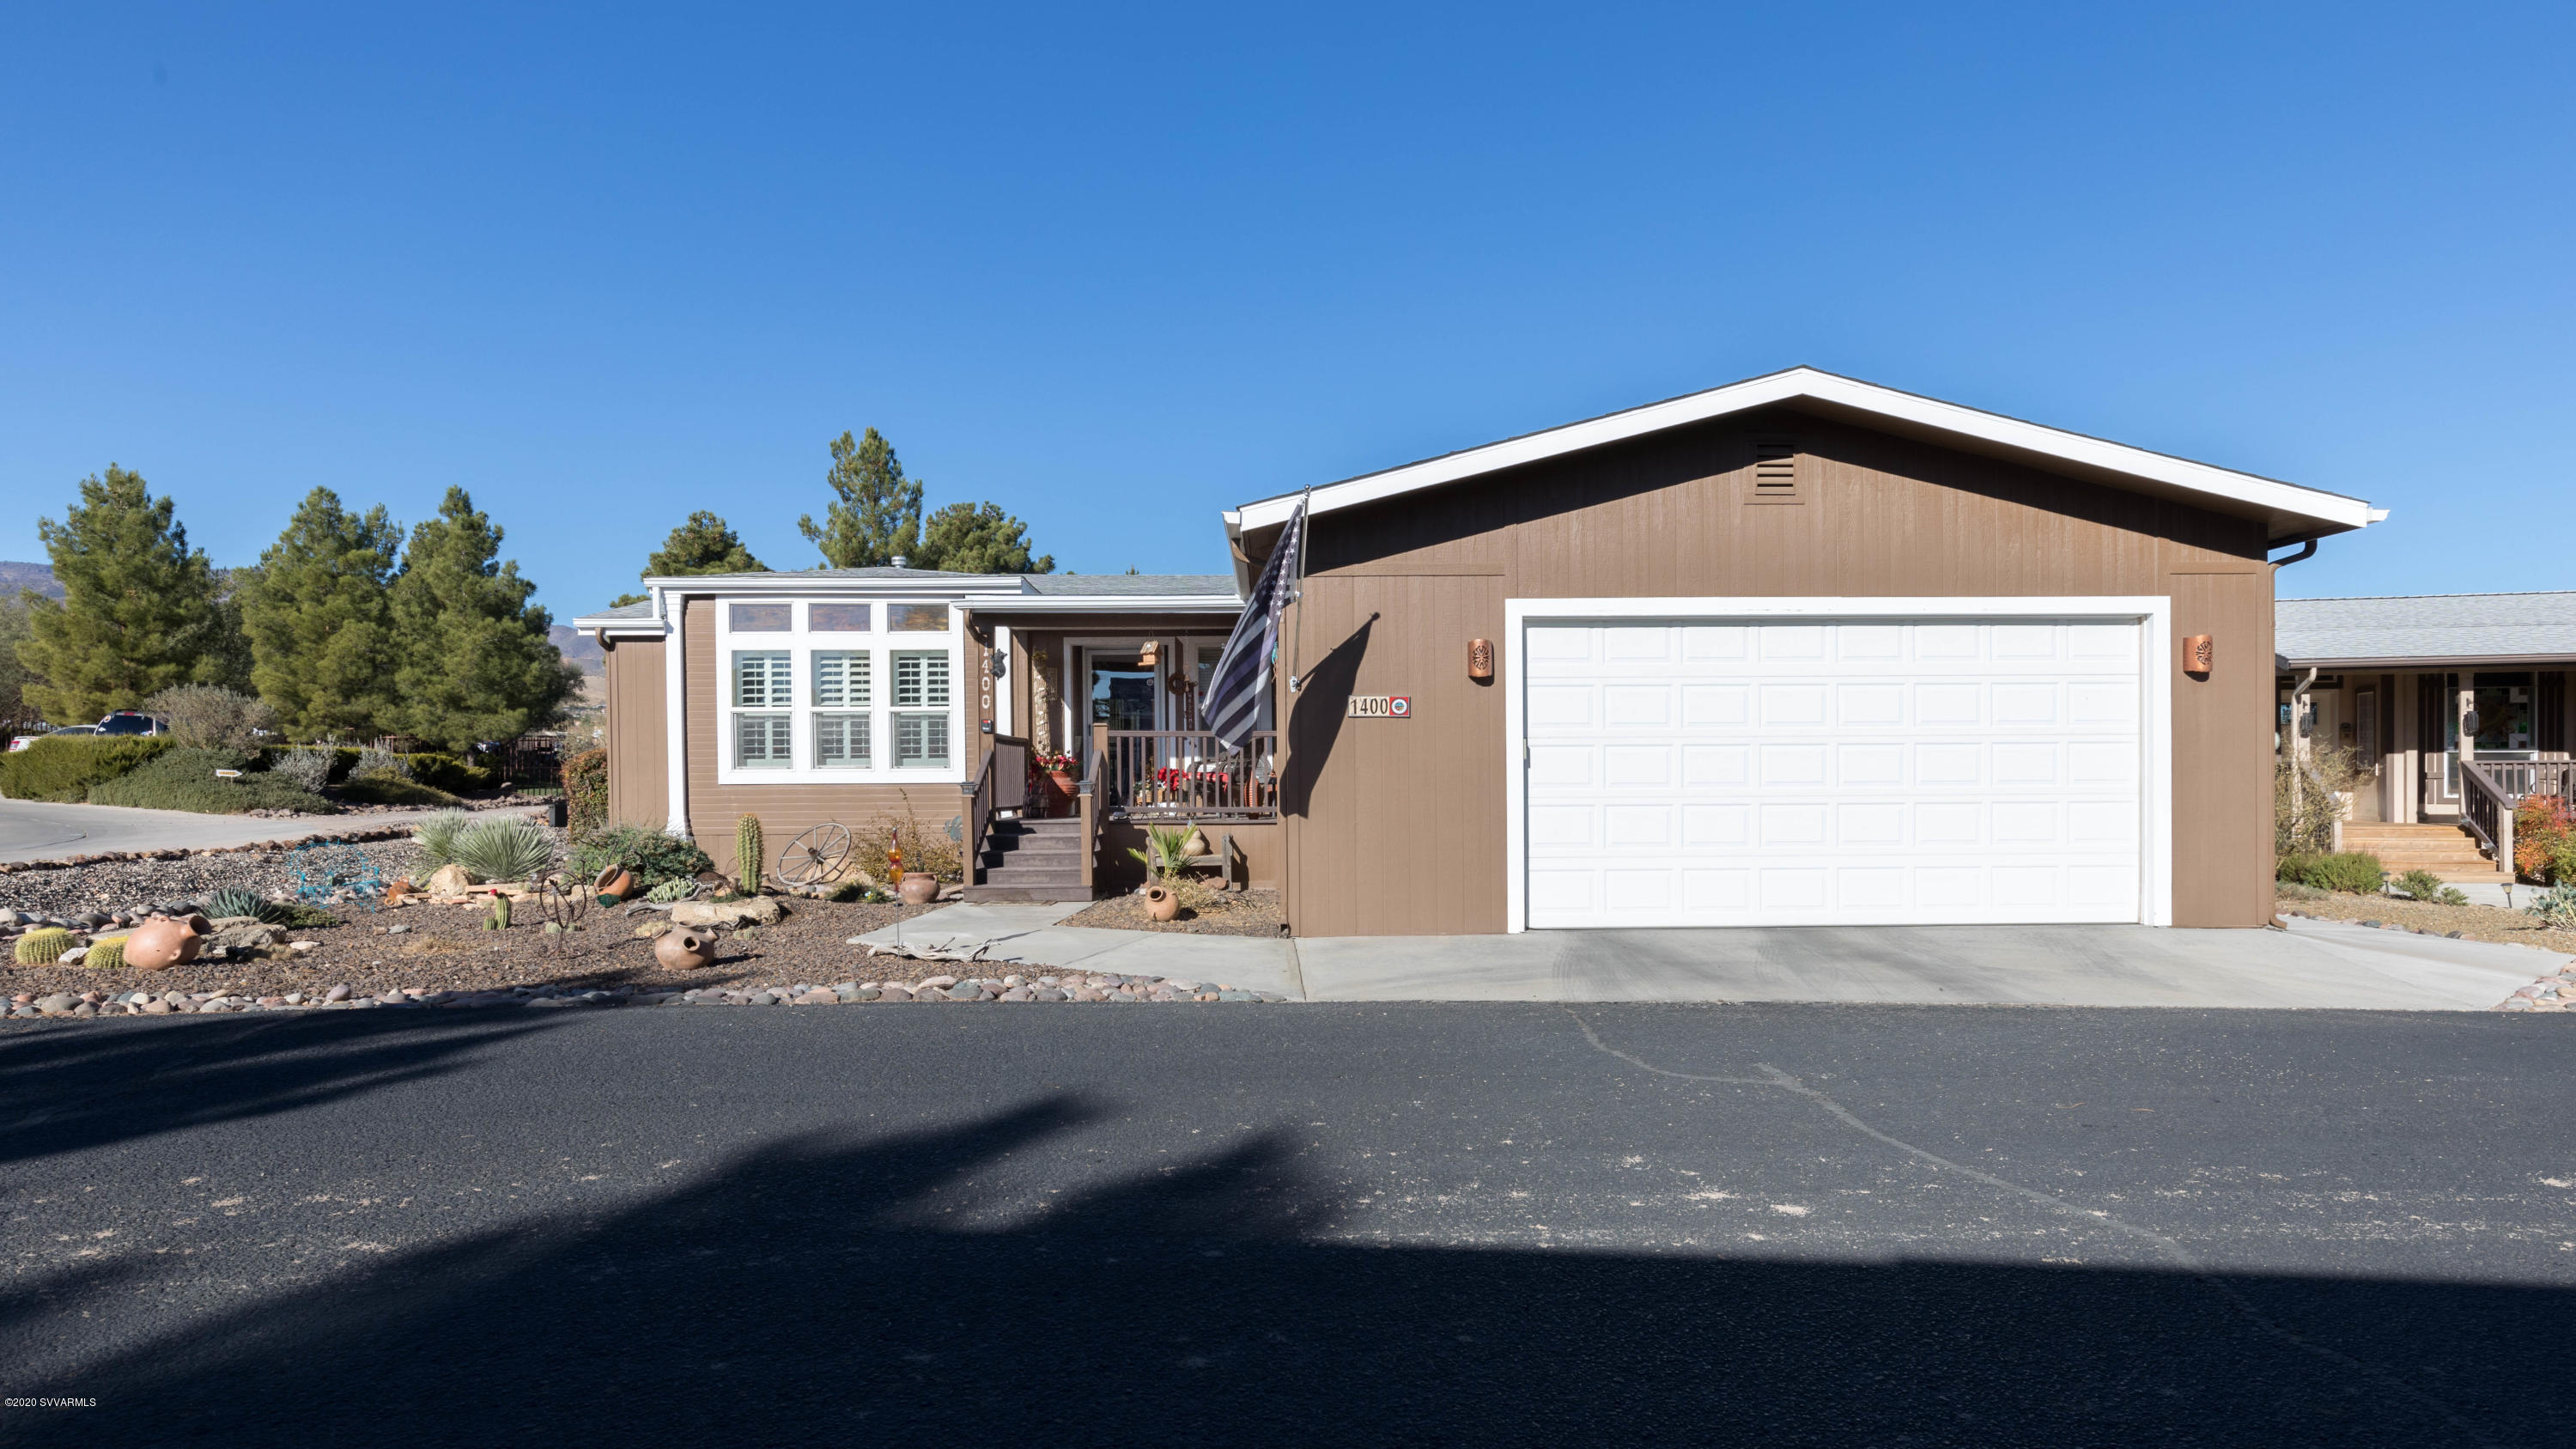 1400 Hogan Drive Cottonwood, AZ 86326